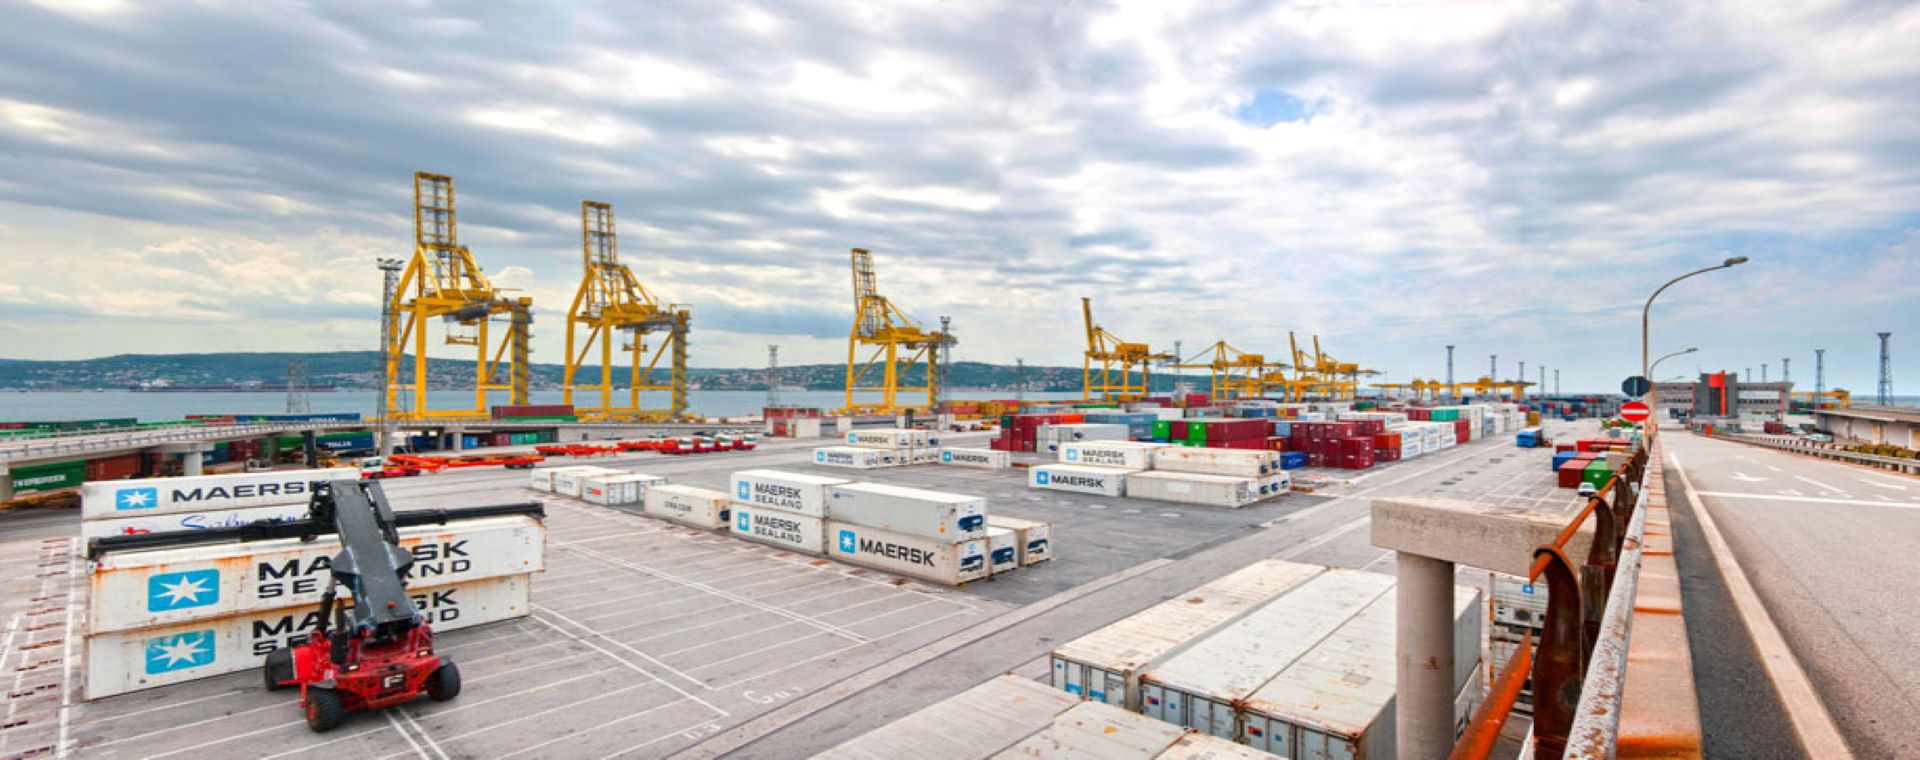 Immagine: Smart ideas for sustainable and low-carbon ports